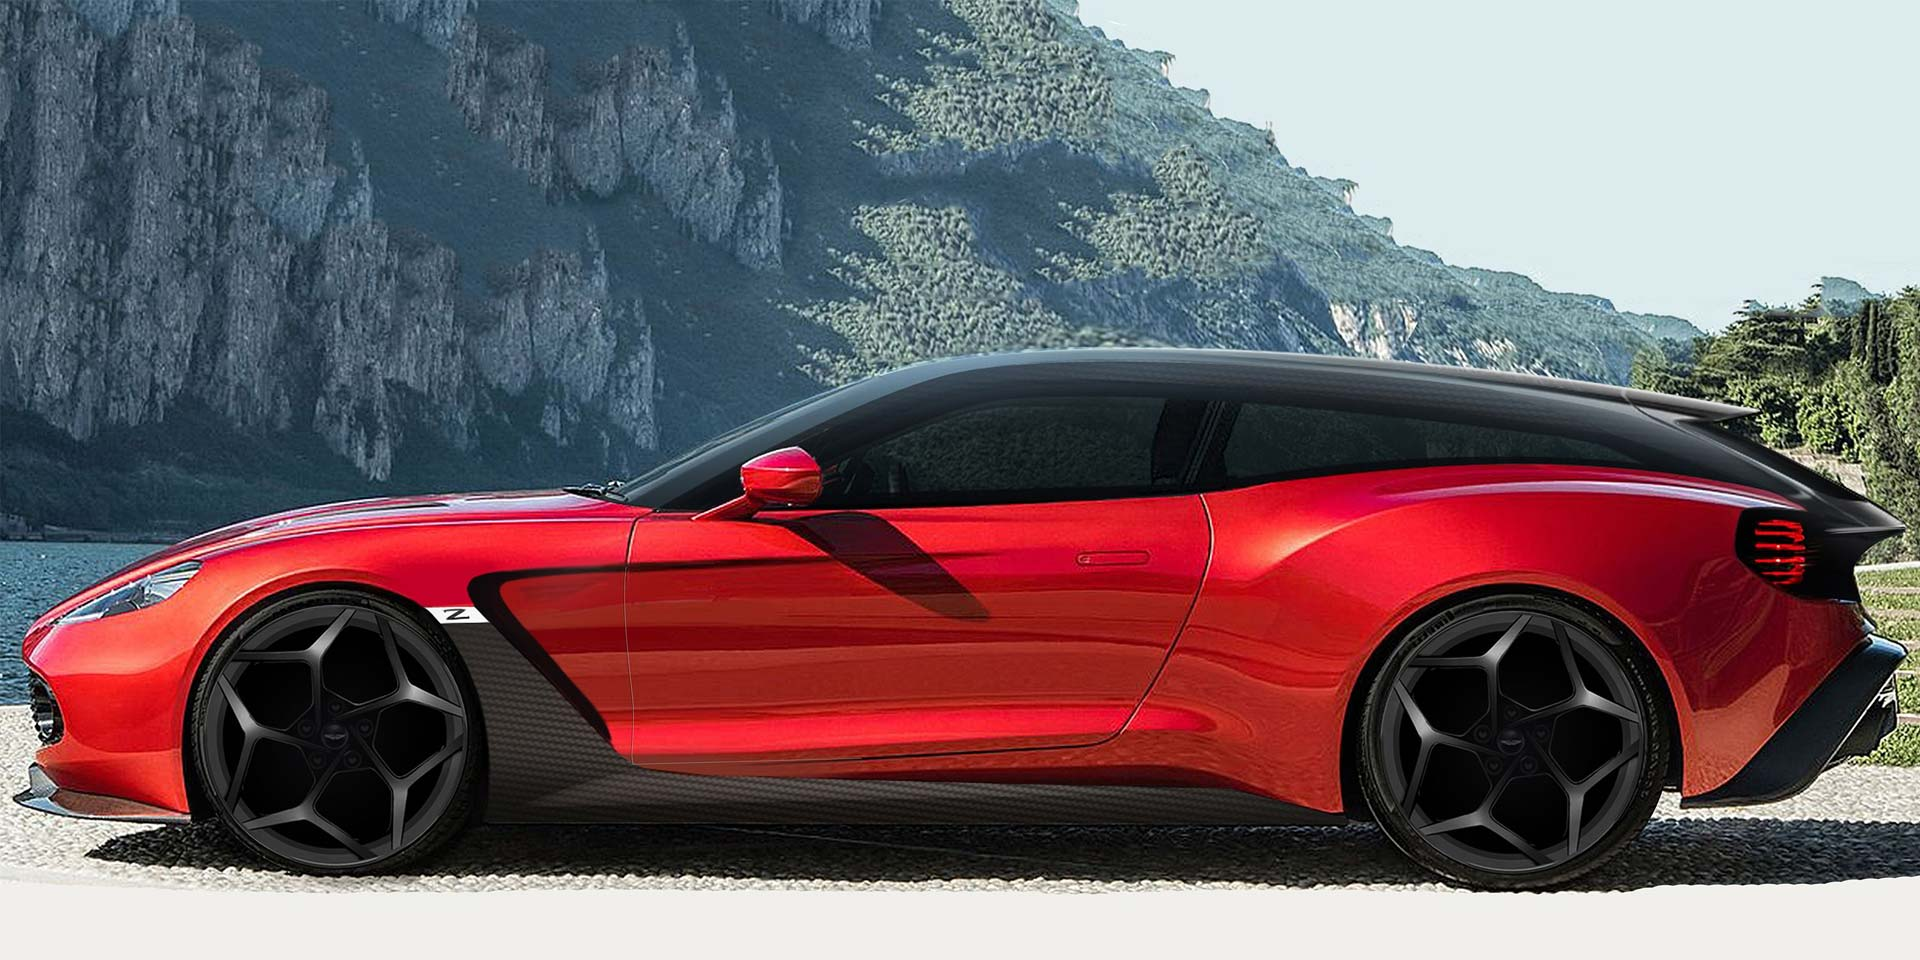 Speedster And Shooting Brake To Join Vanquish Zagato